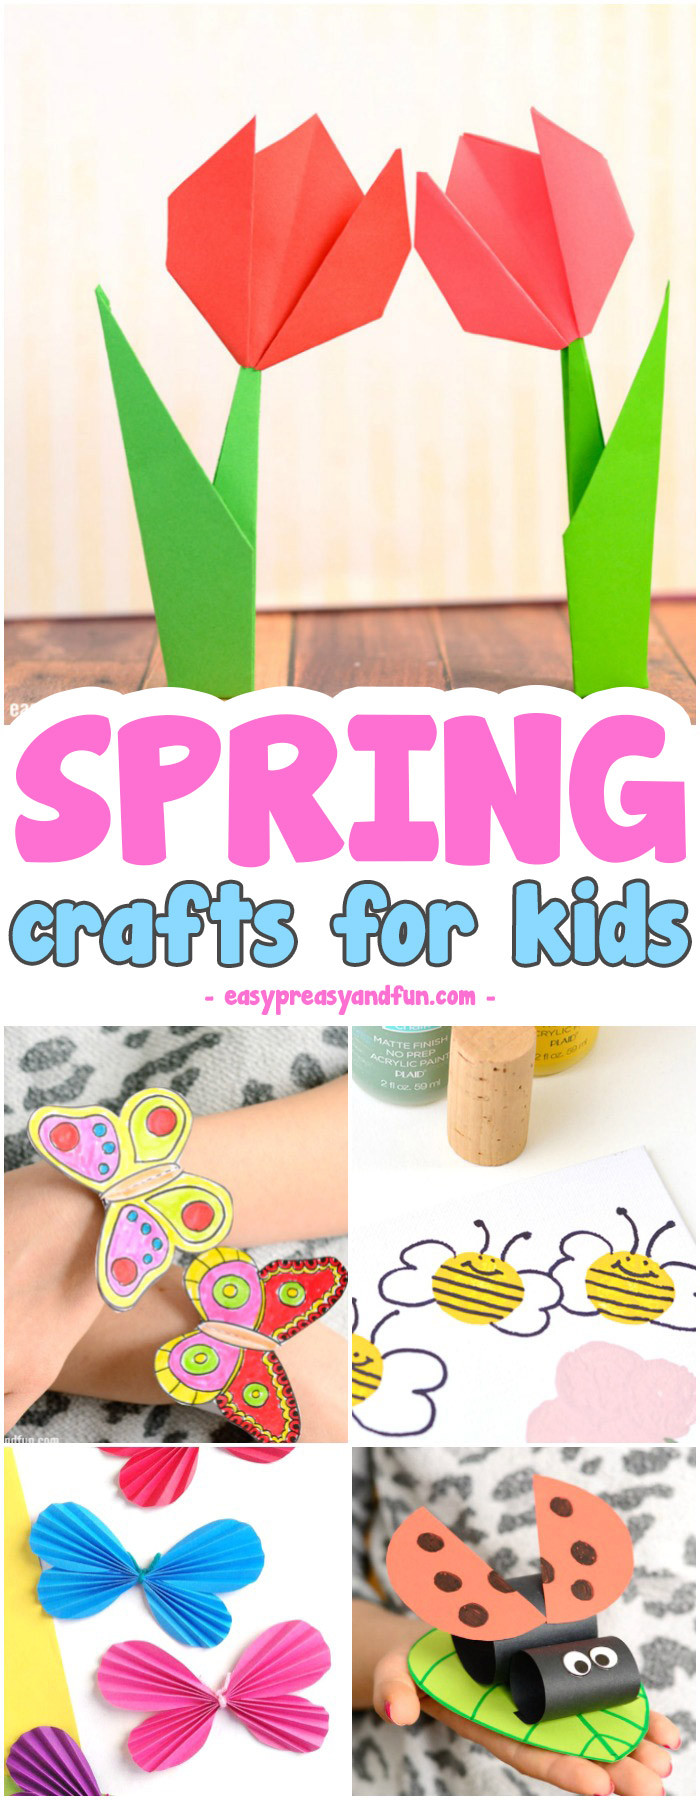 Best ideas about Easy Arts And Crafts For Toddlers . Save or Pin Spring Crafts for Kids Art and Craft Project Ideas for Now.